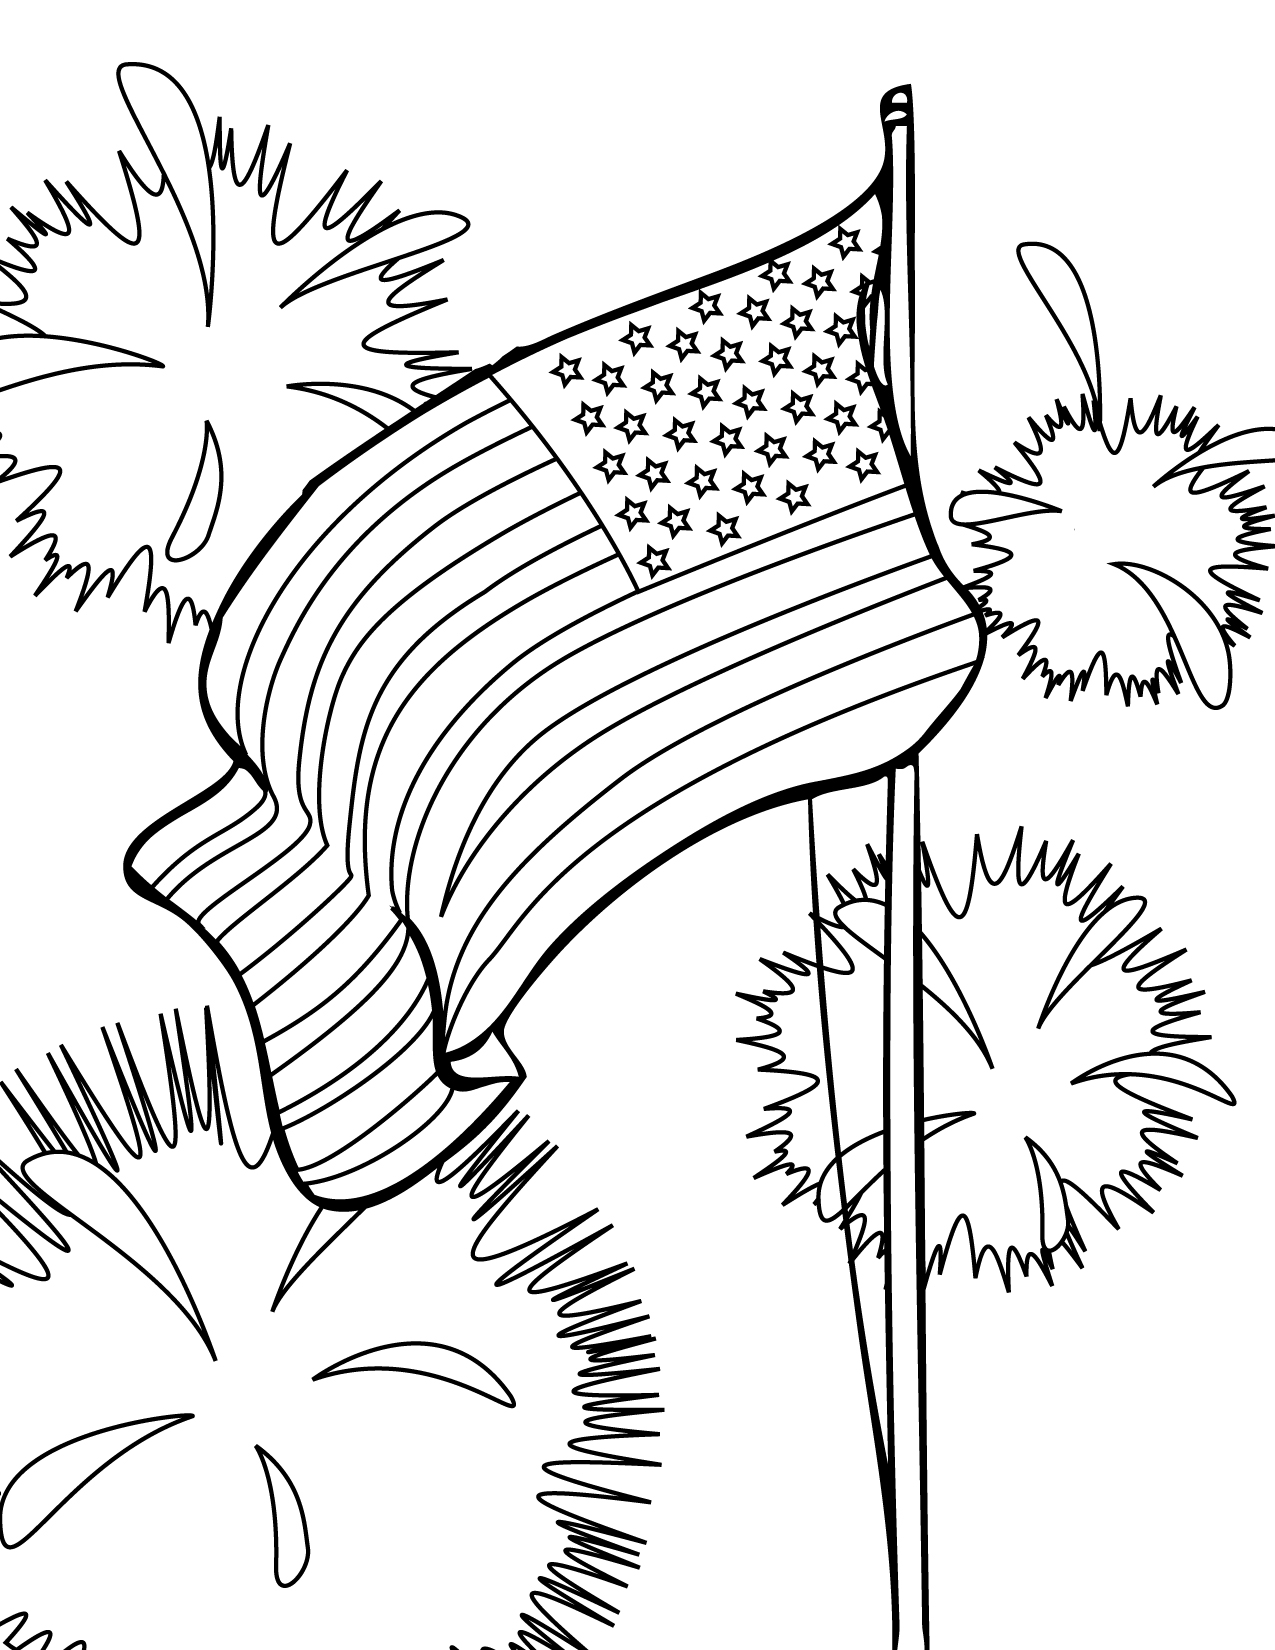 Ipad Coloring Pages